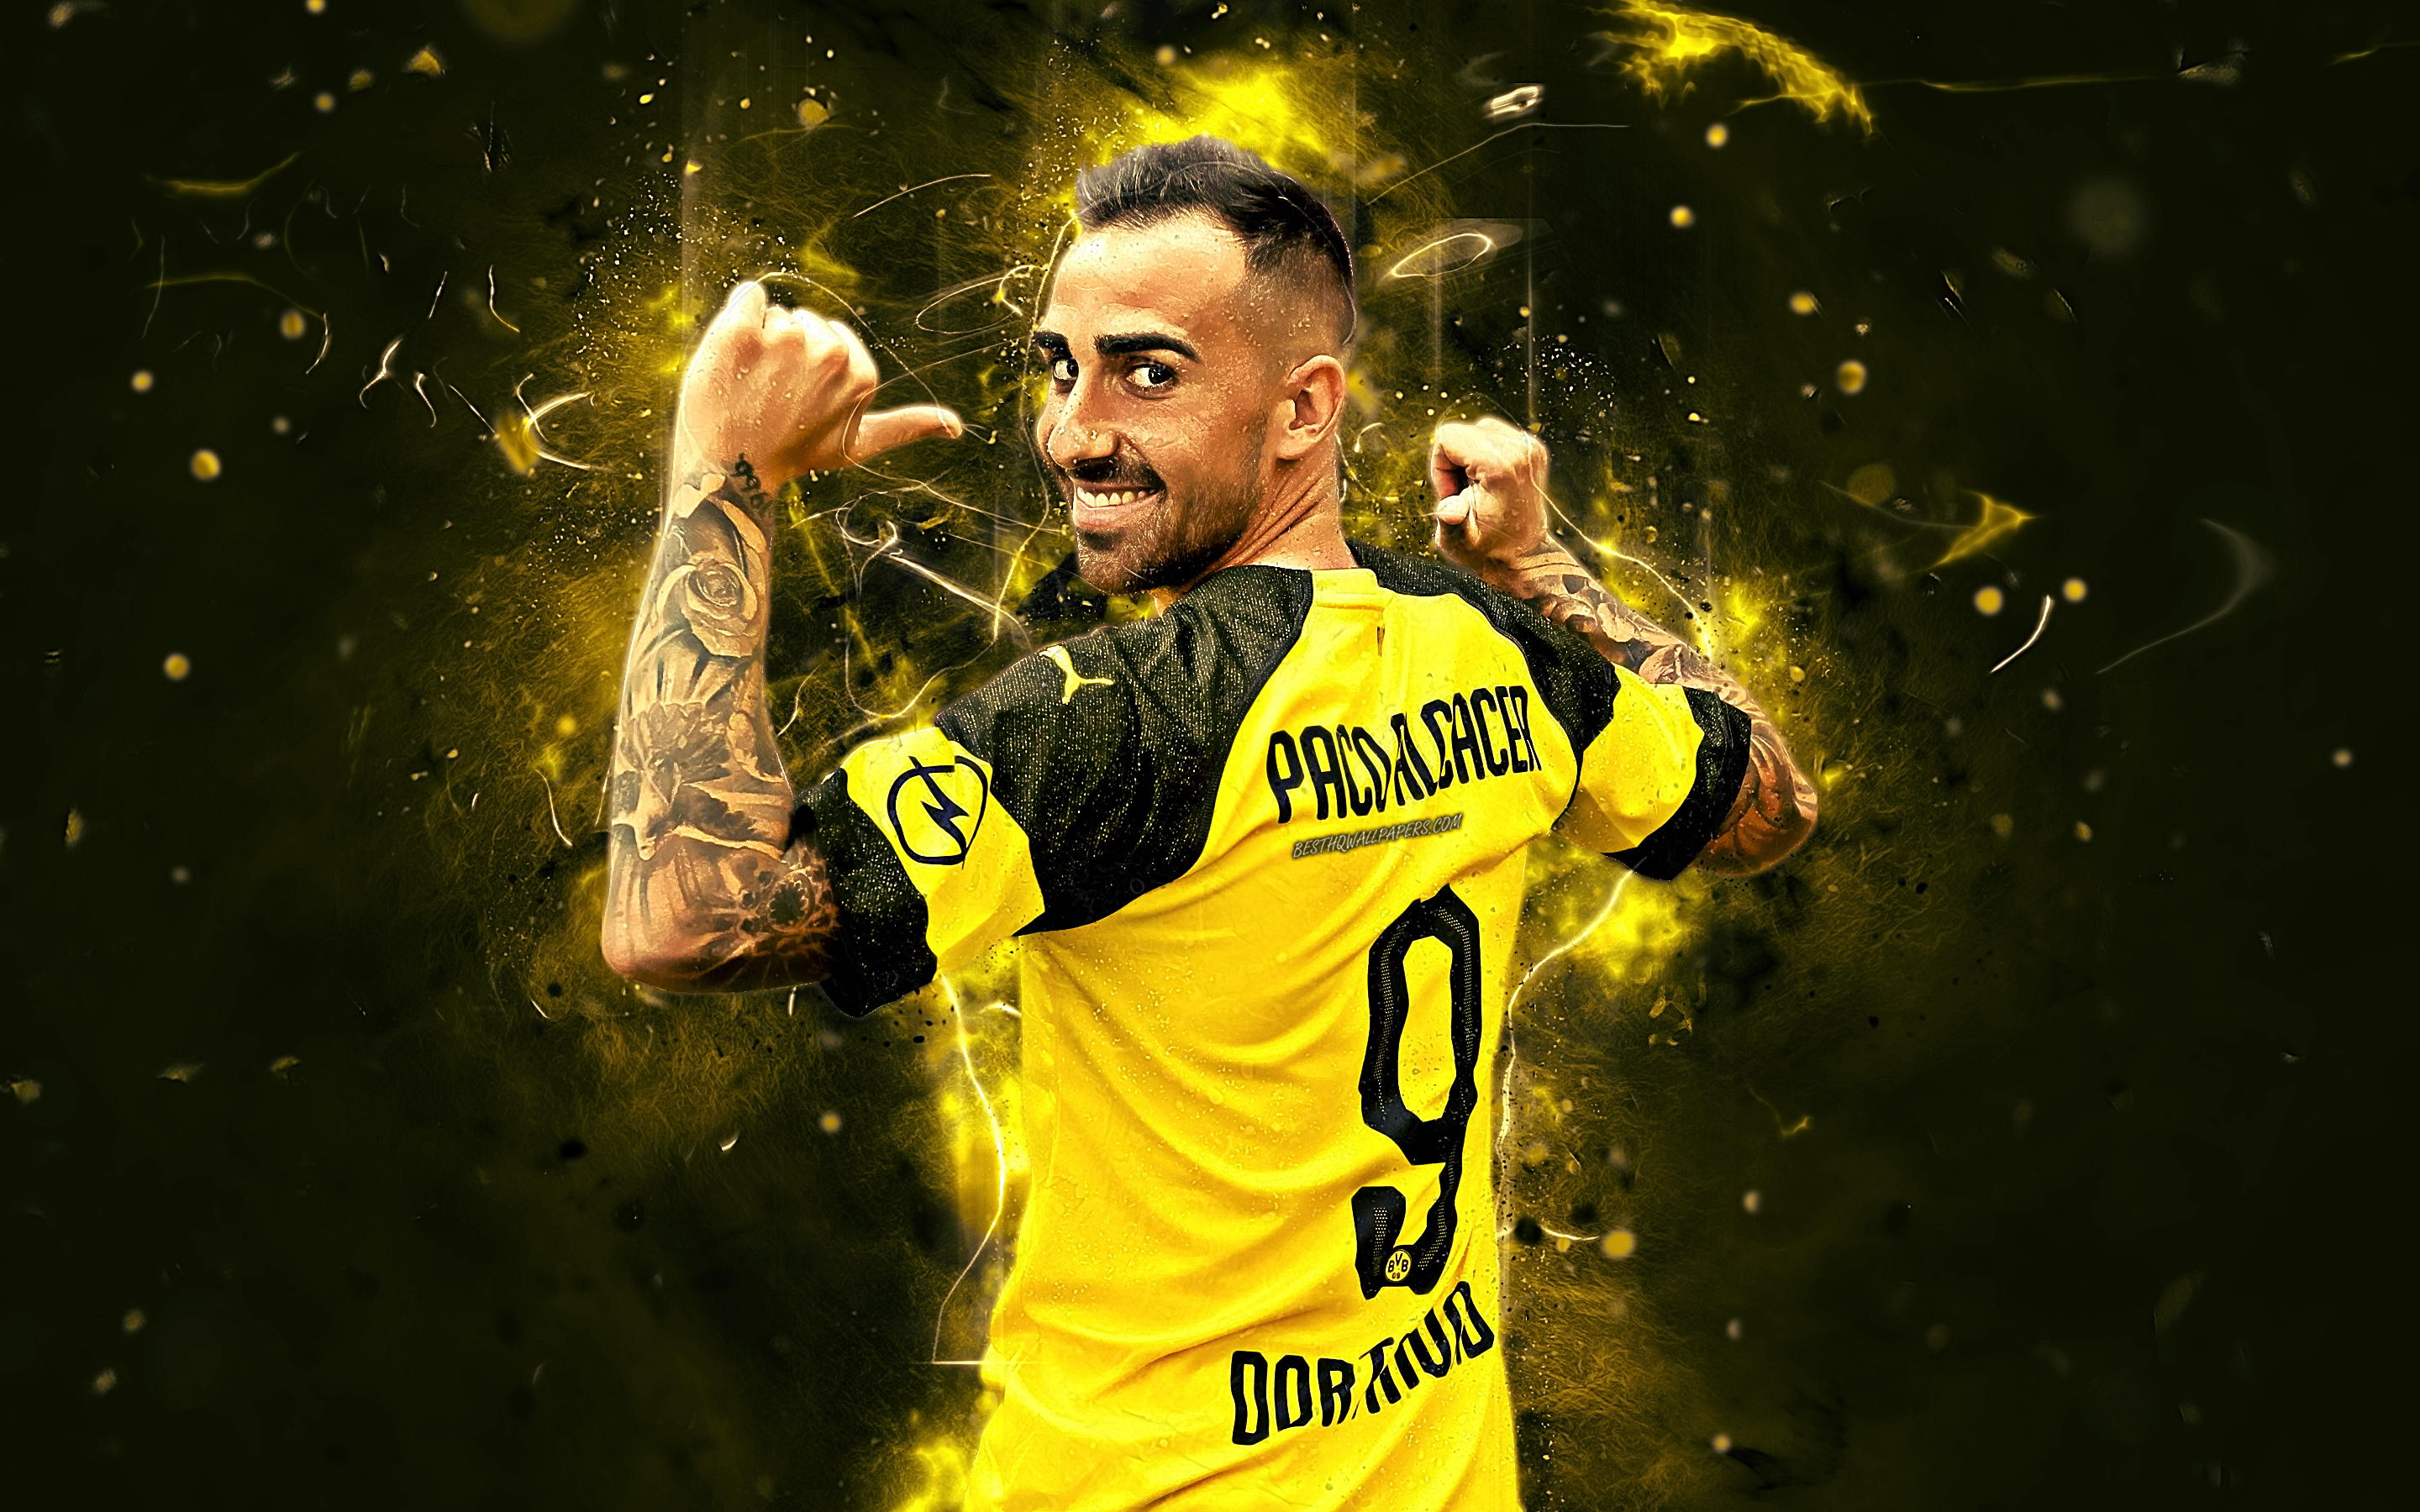 Borussia Dortmund Spanish Paco Alcacer Soccer Wallpaper Paco Alcacer 270901 Hd Wallpaper Backgrounds Download